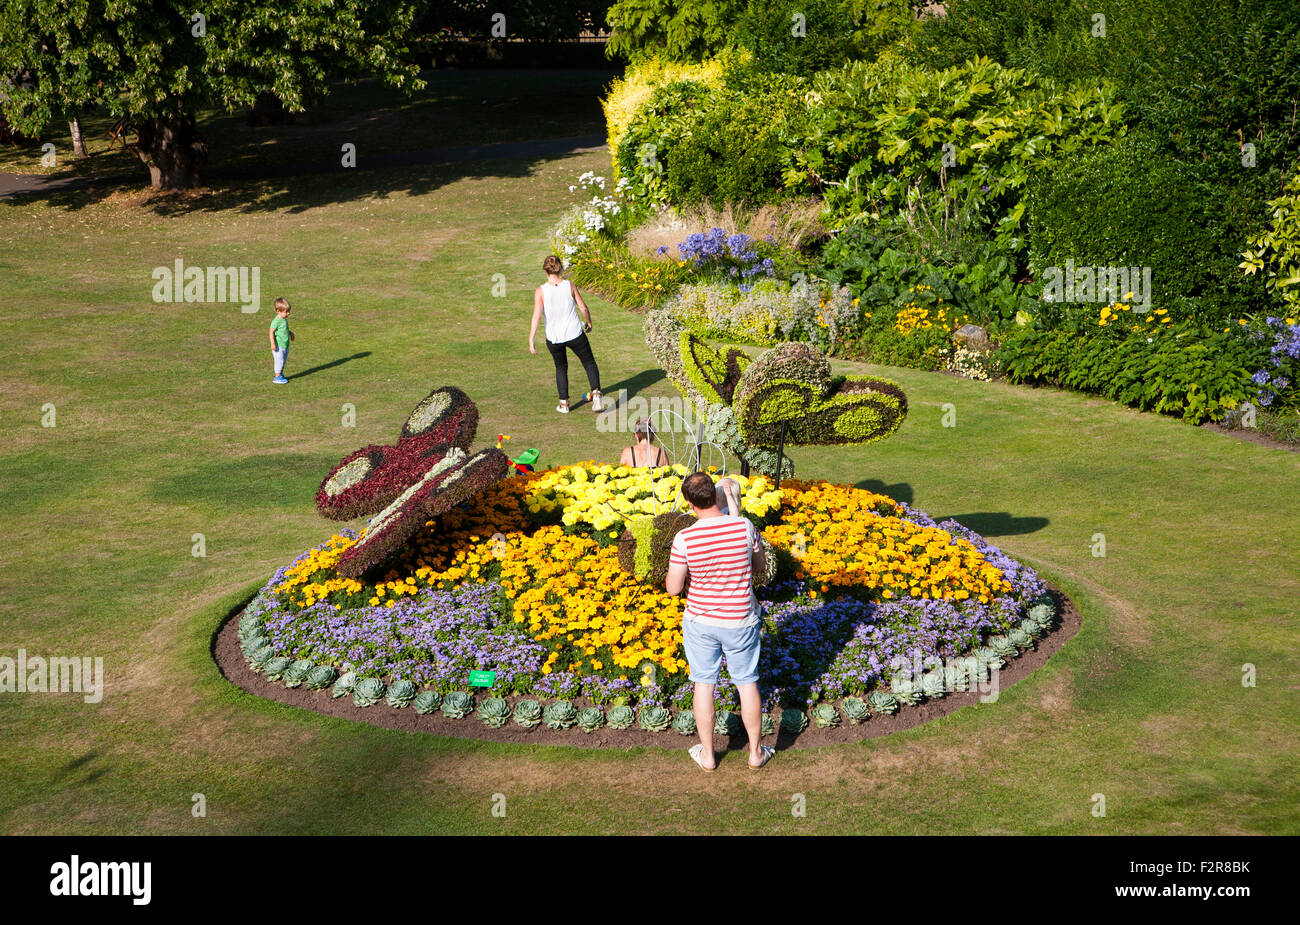 Family enjoying floral display of butterflies in Parade Gardens public park in city centre of Bath, Somerset, England, - Stock Image